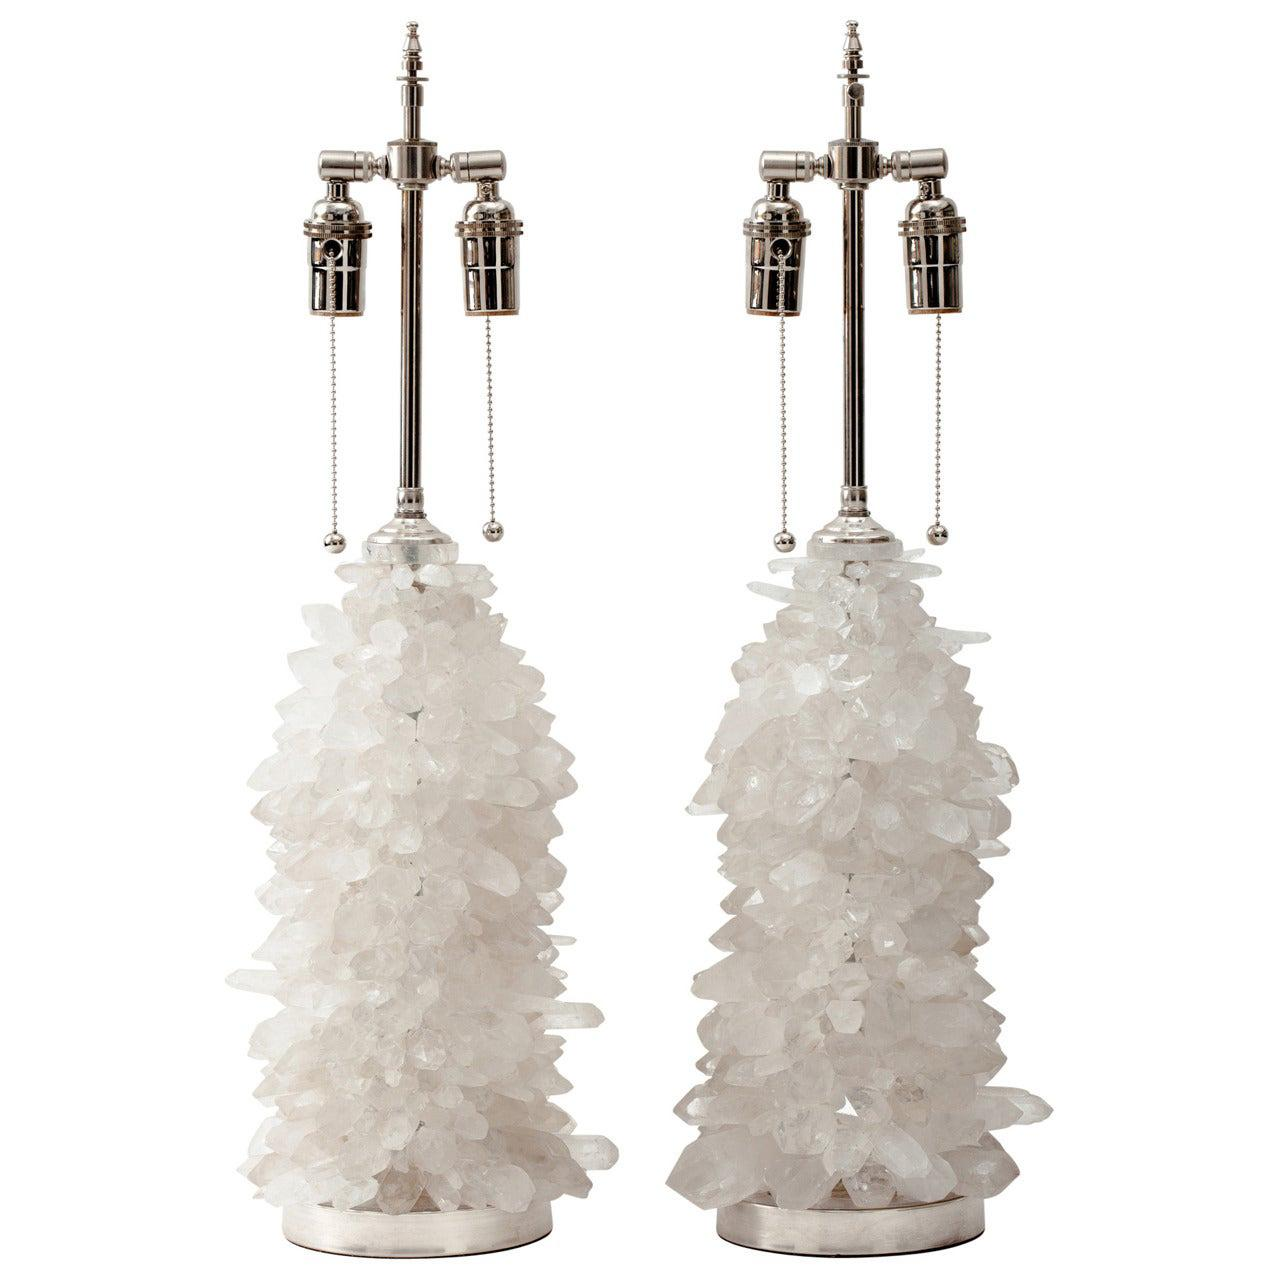 Pair of Rock Crystal Cluster Lamps